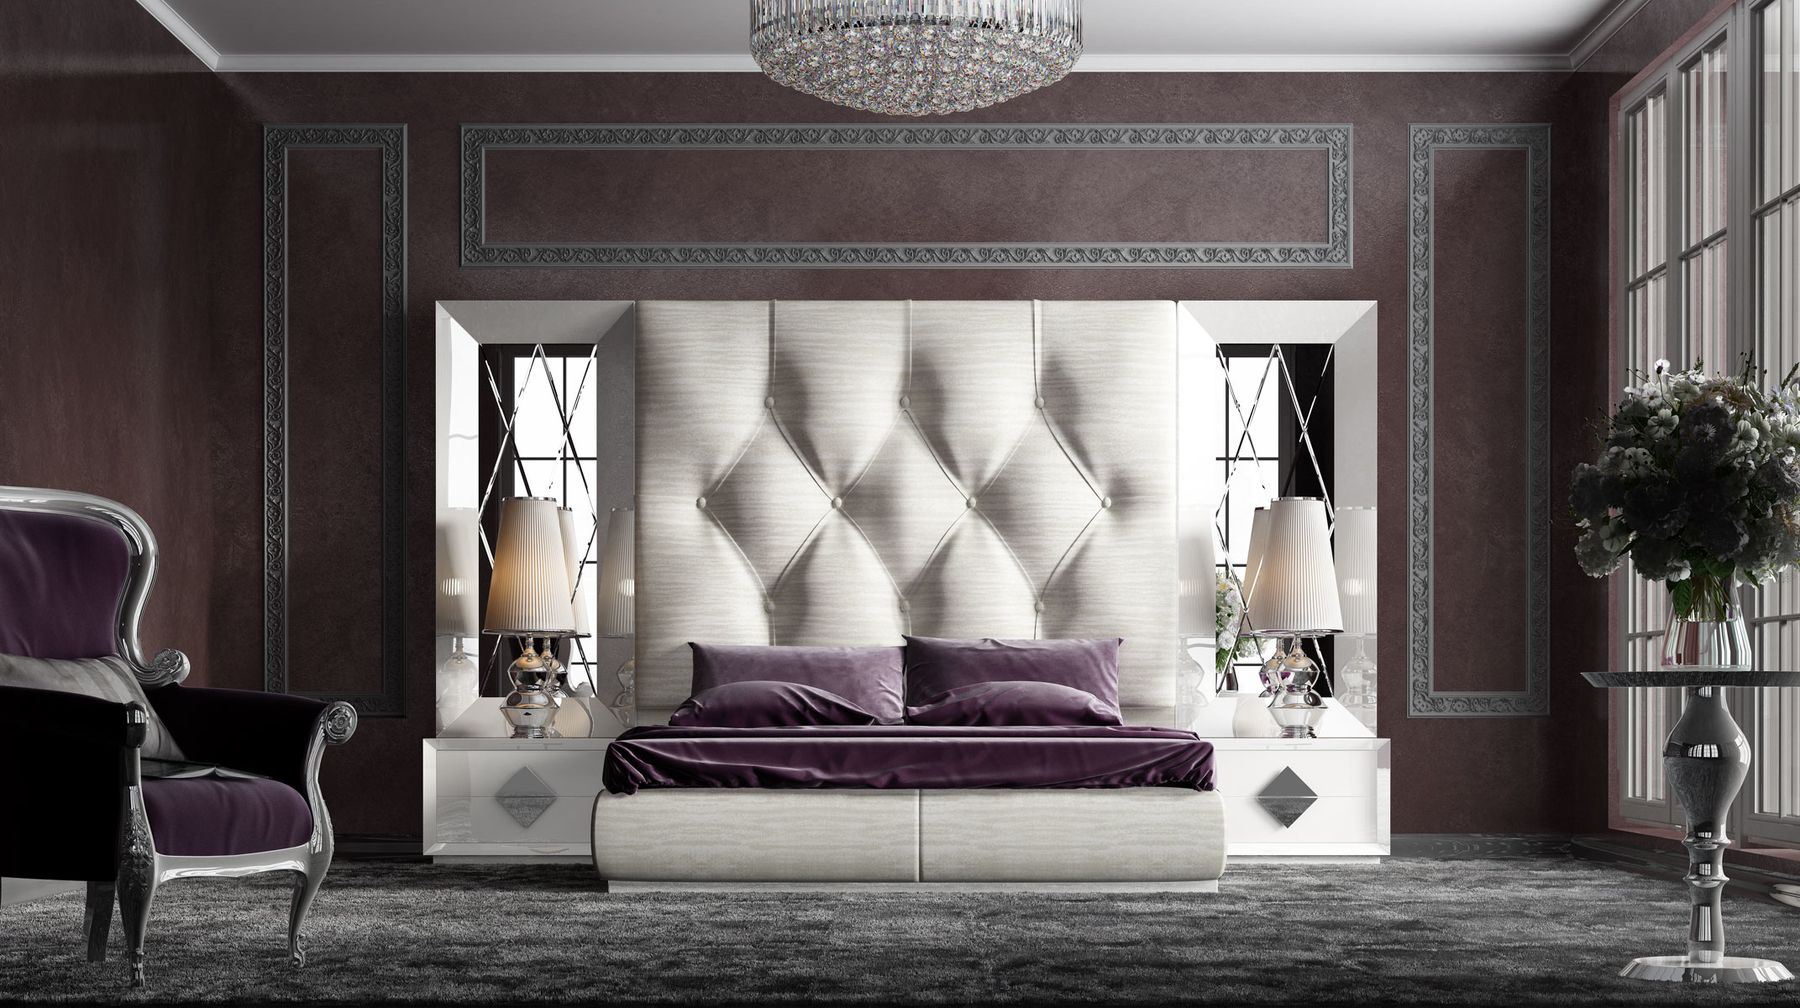 KL121 King Size Bed in 2020 High headboard beds, King